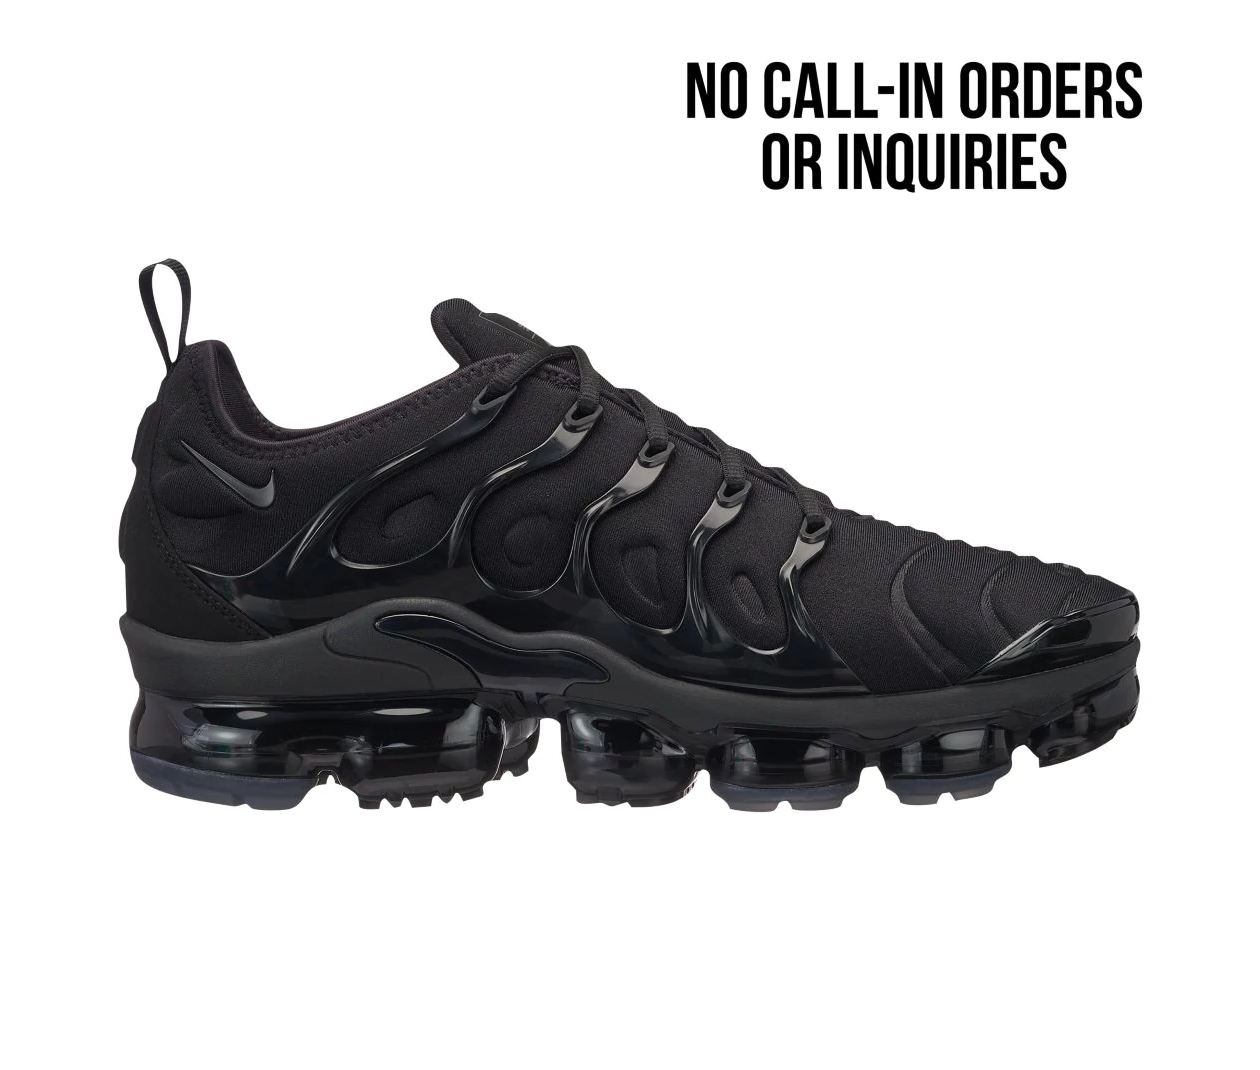 new concept 90c9f e7f24 The Nike Air Vapormax Plus Has Dropped in Four New Colorways ...